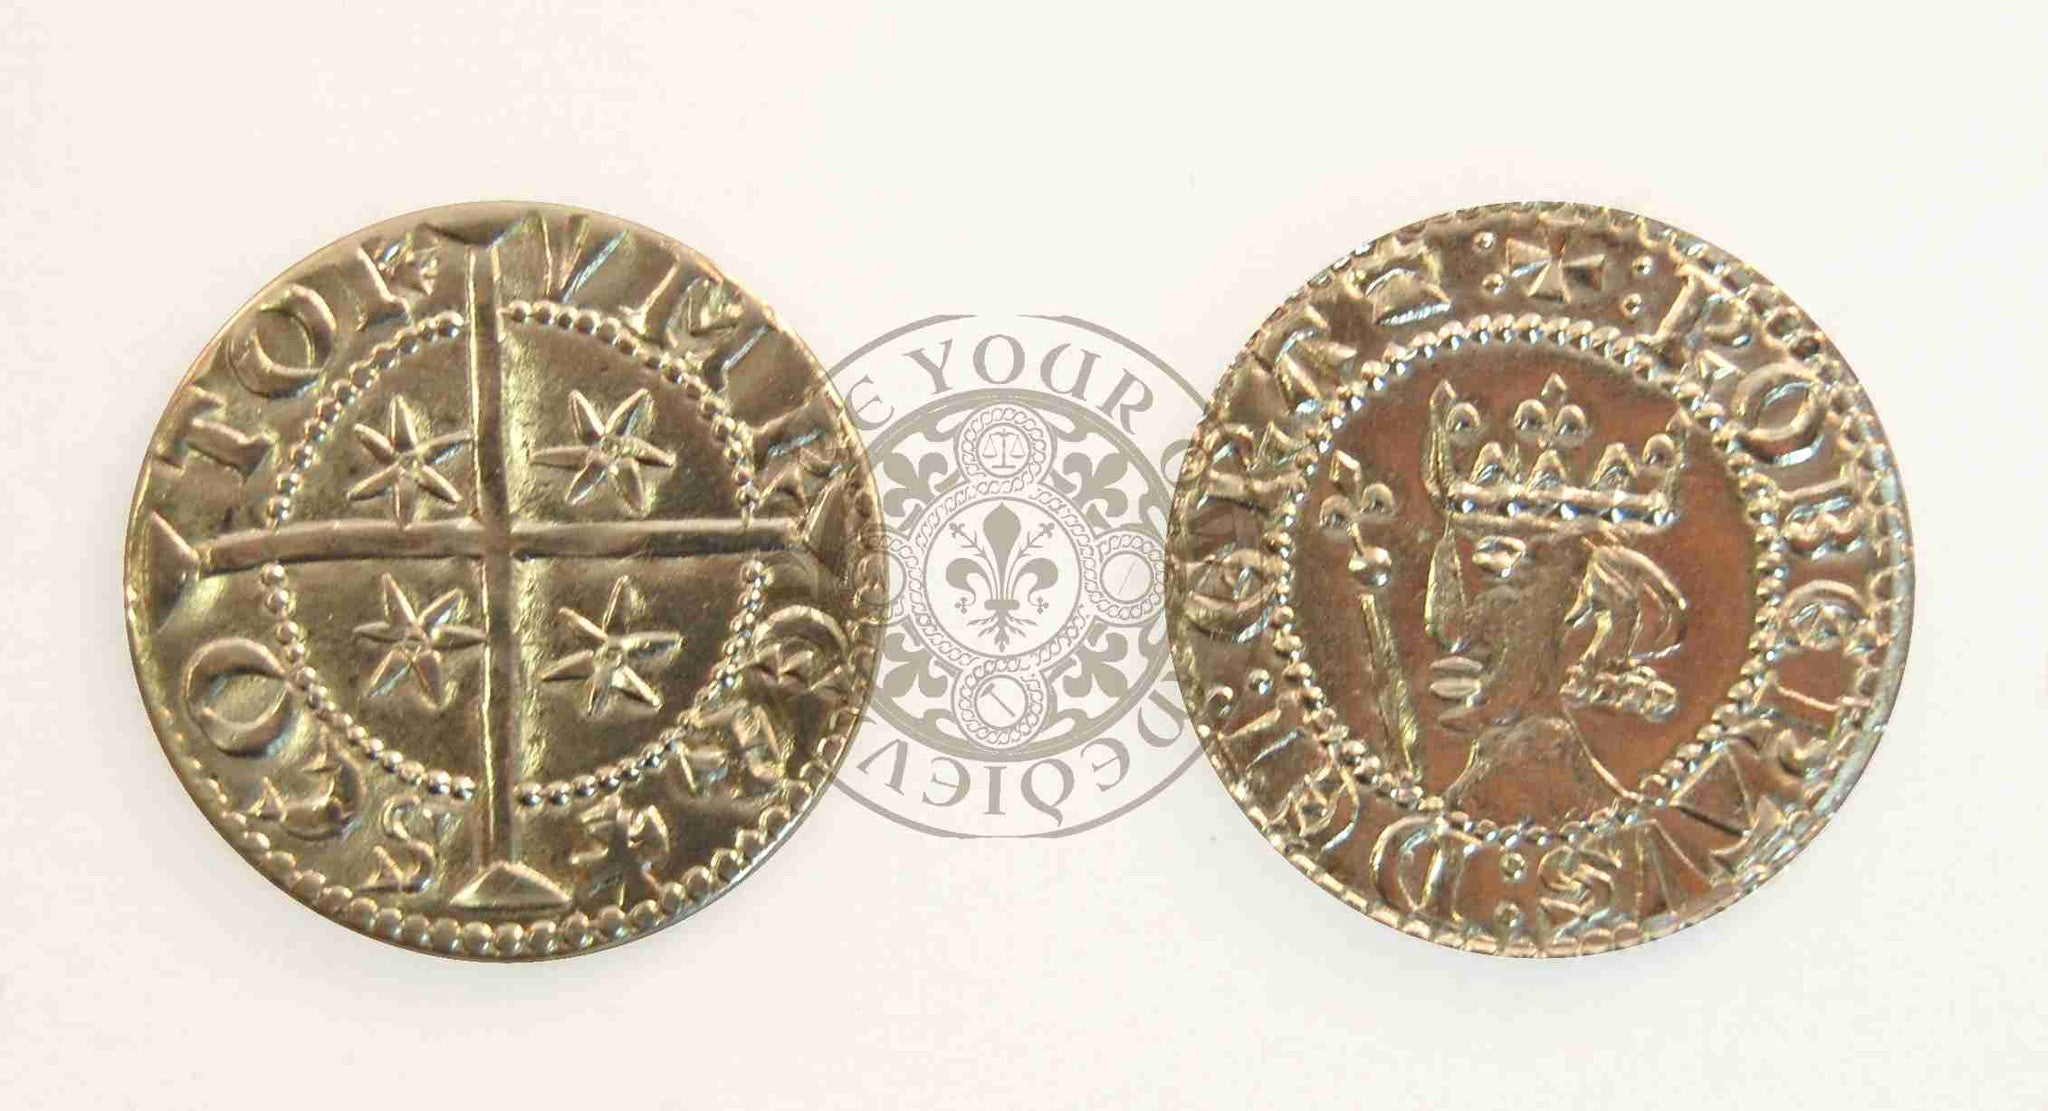 Robert The Bruce Scottish Coin (1306 - 1329)